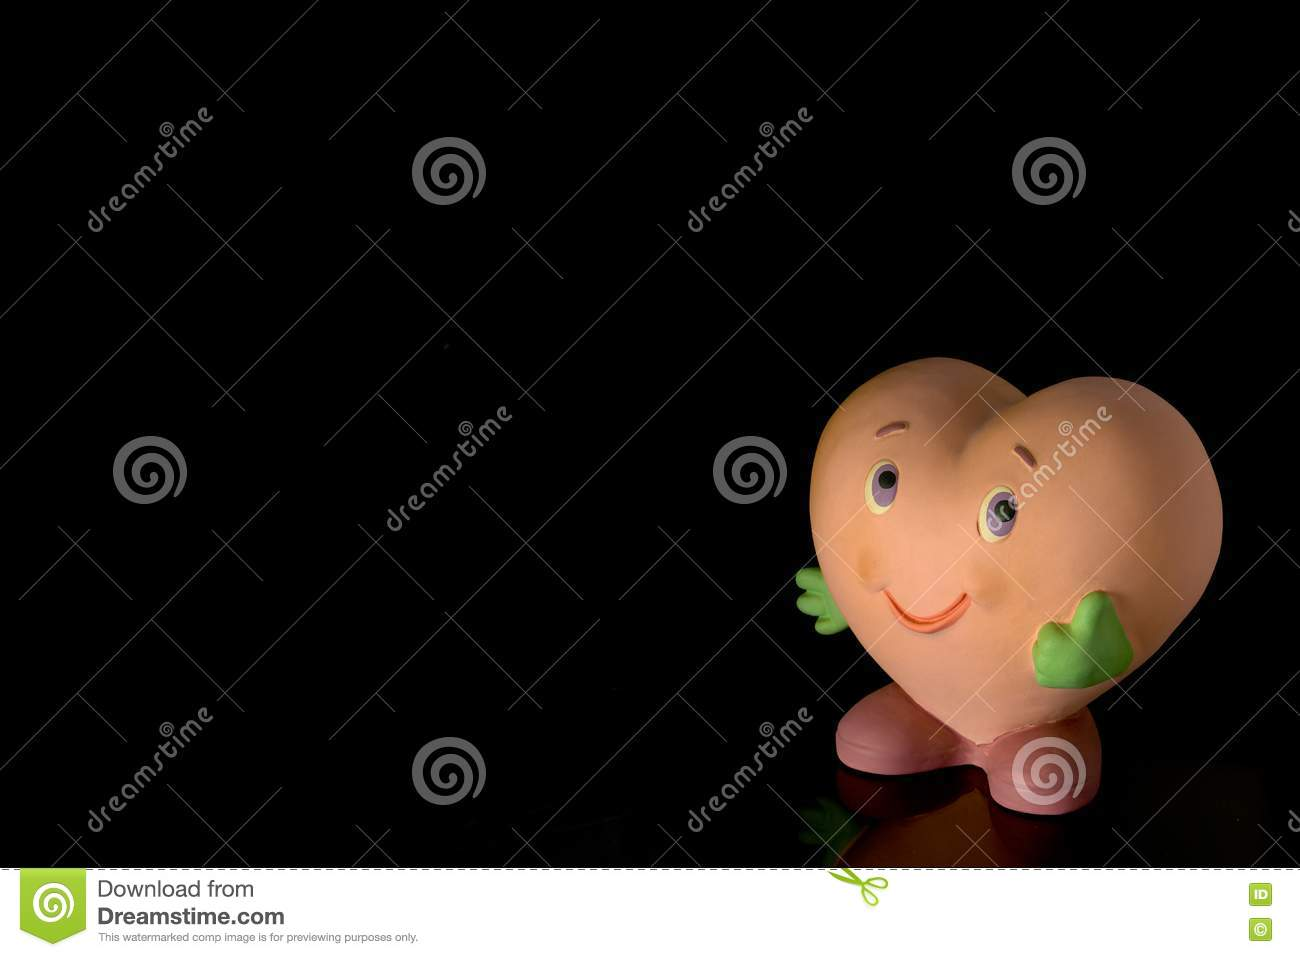 Smiling heart-shaped doll